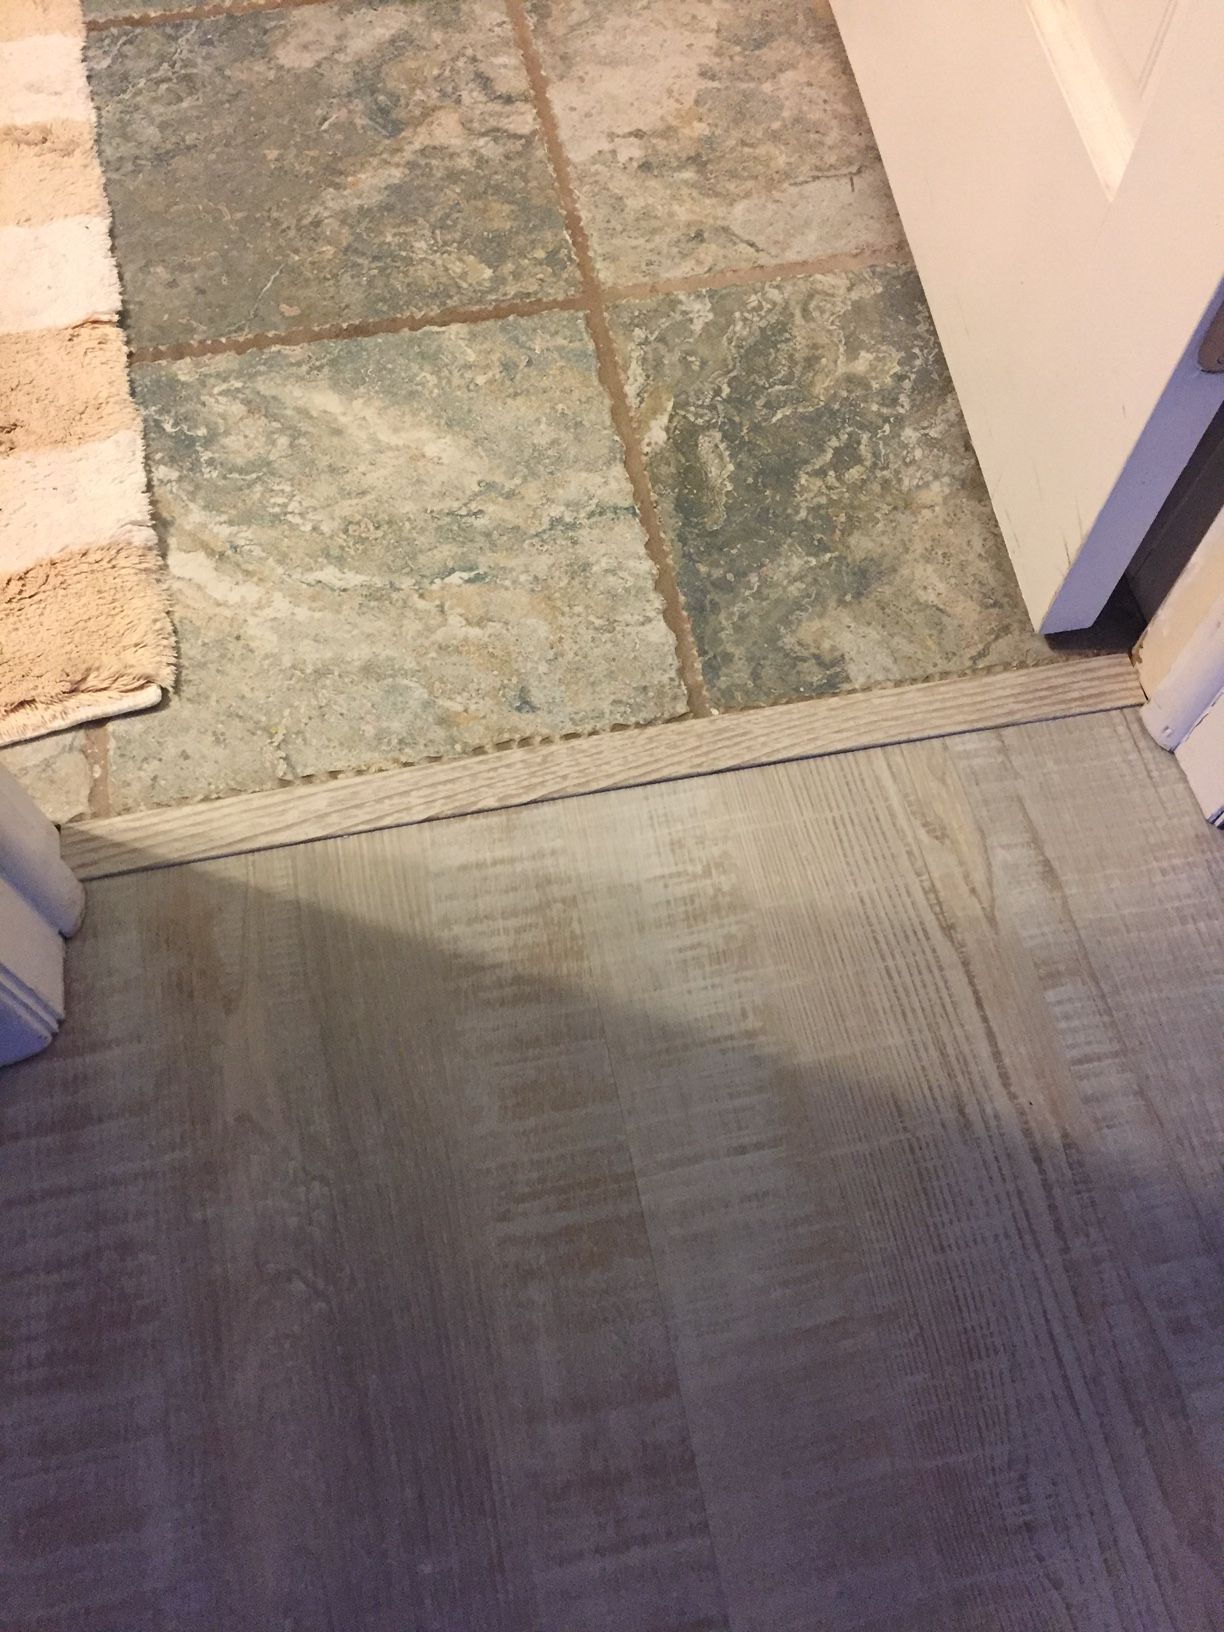 b1a61da6bbbf where LVT meets ceramic. Edging used was a baby threshold. Tile Floor